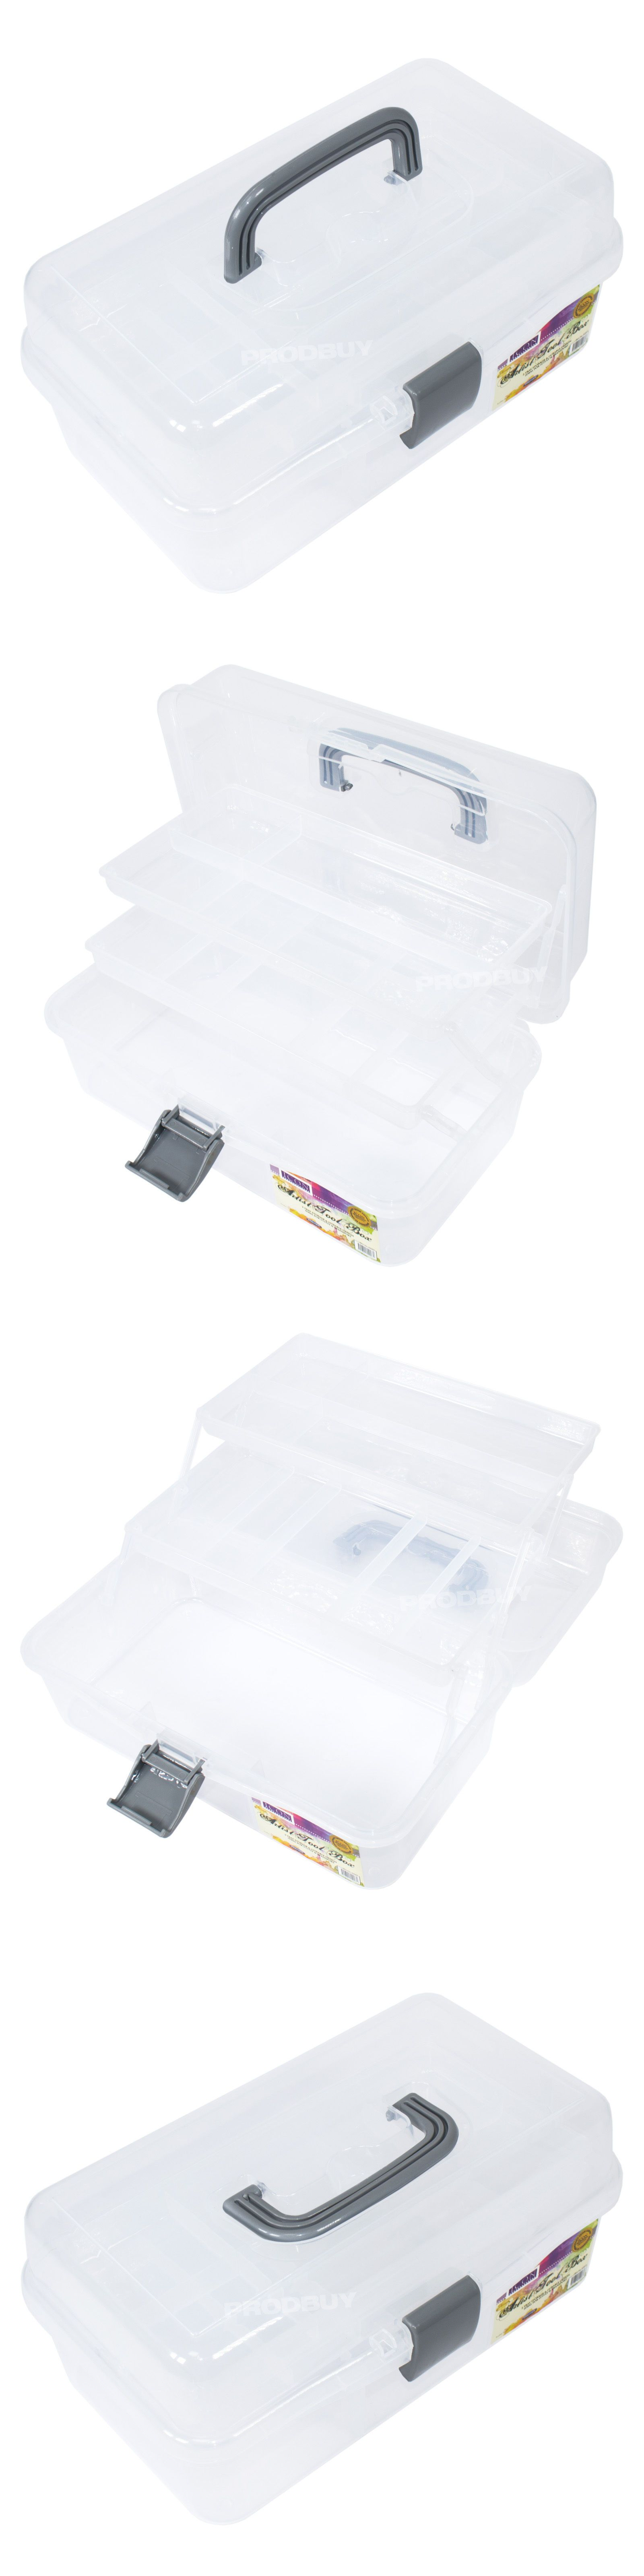 Drawing Supplies Storage Artist S Tool Box Clear